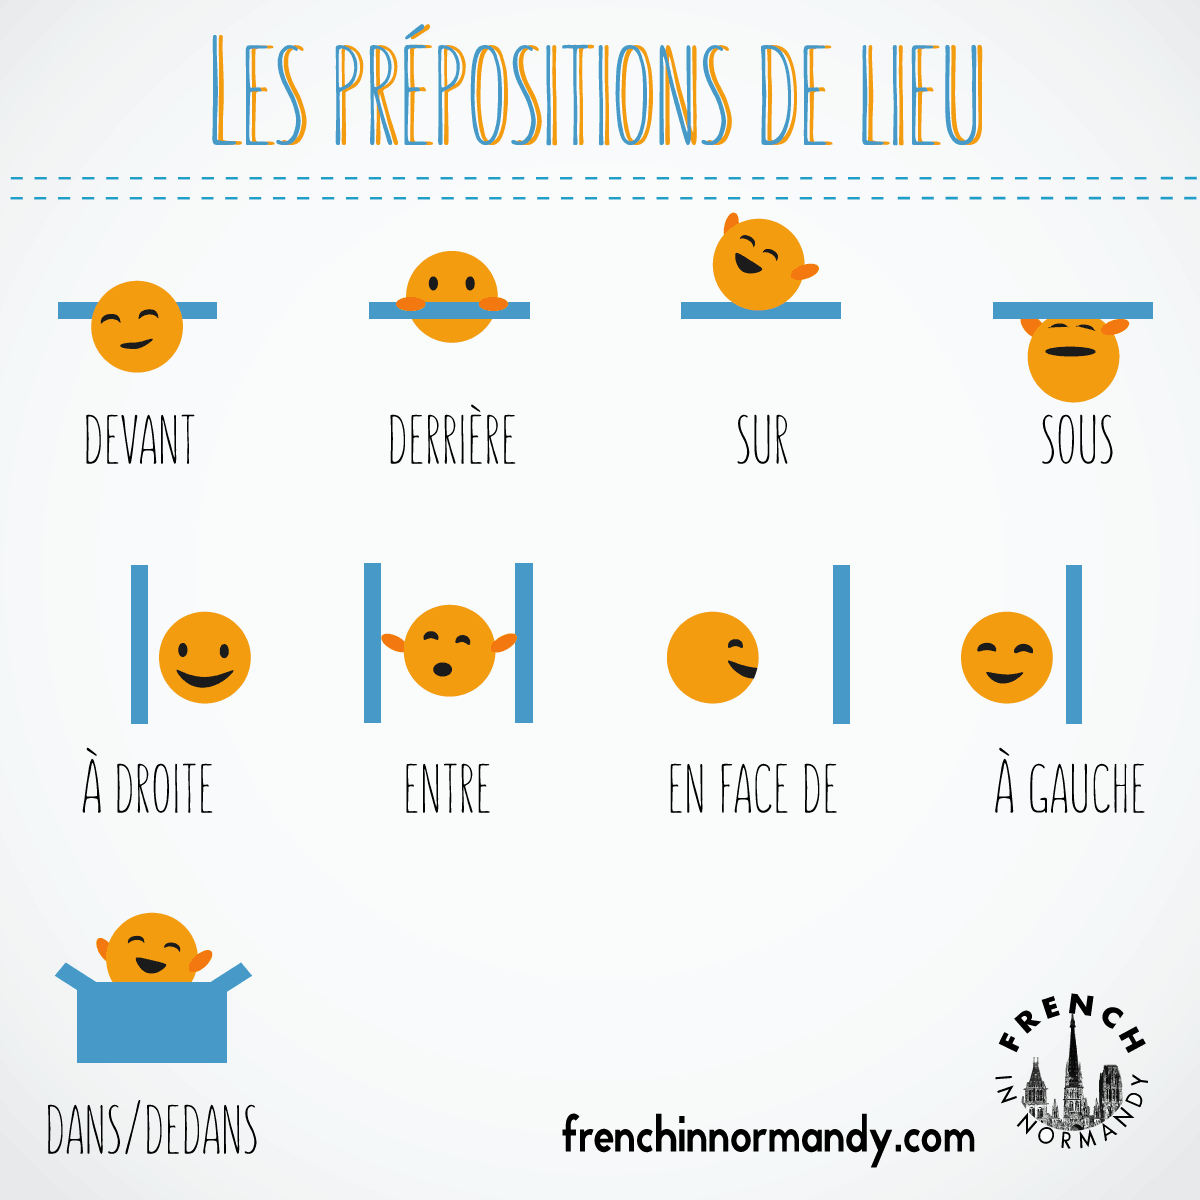 hight resolution of Learn French #6: Les prépositions de lieu - French in Normandy